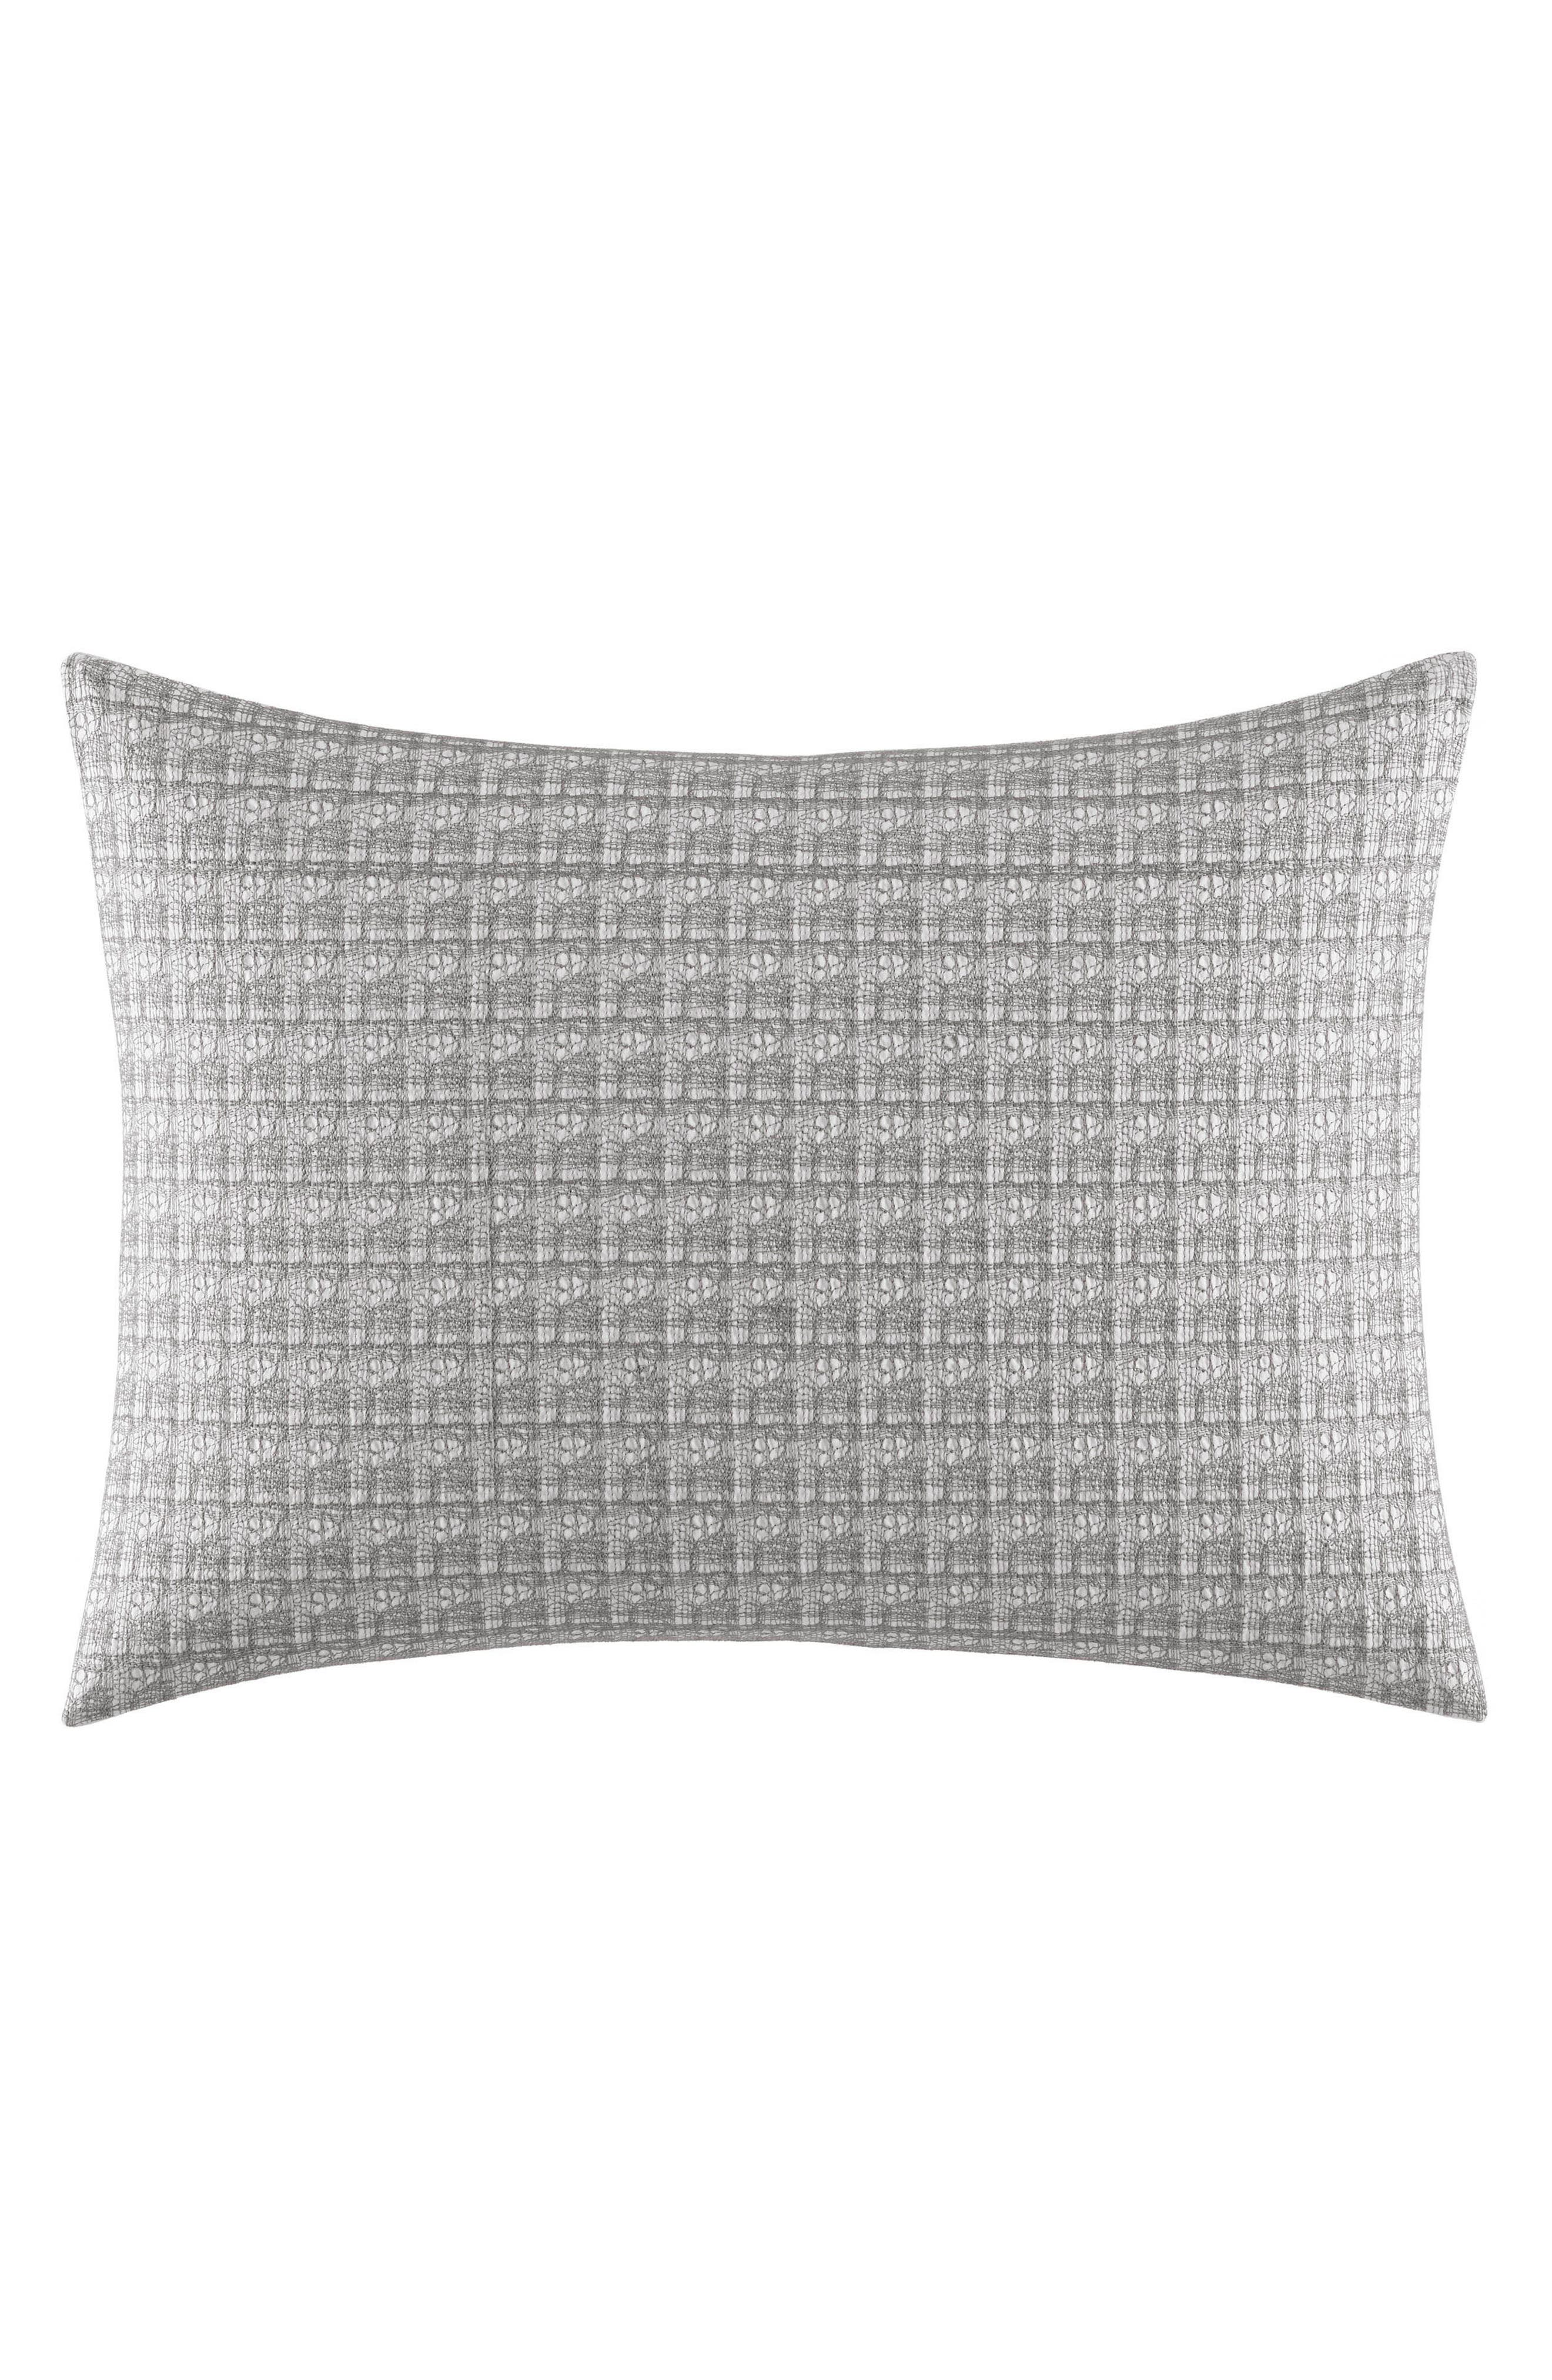 Mirrored Breakfast Accent Pillow,                             Main thumbnail 1, color,                             Grey